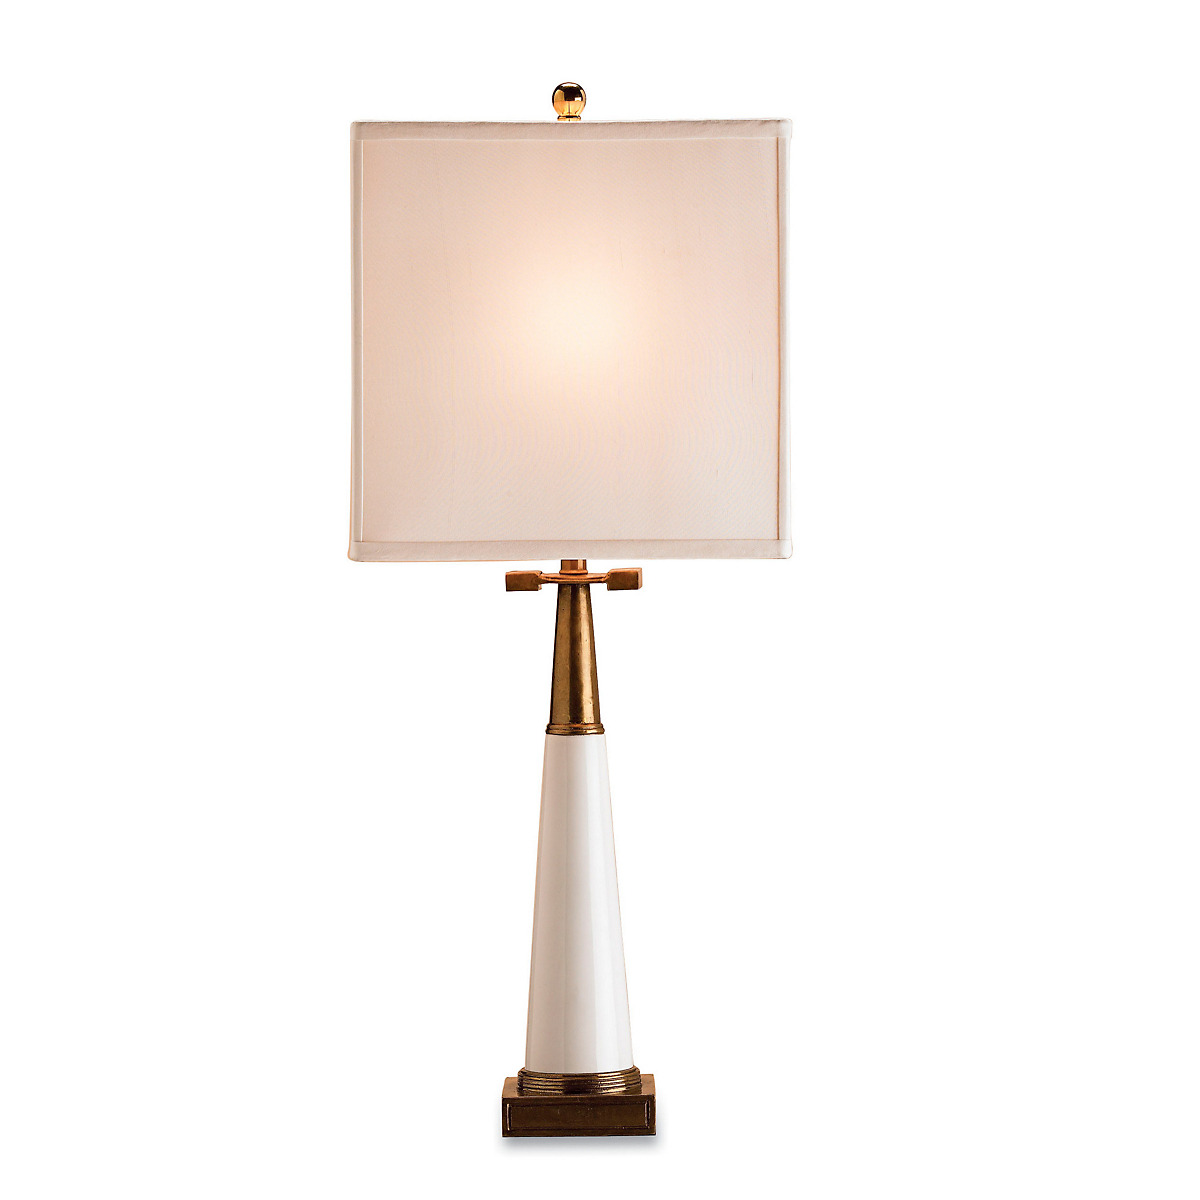 Currey & Company Signature Table Lamp